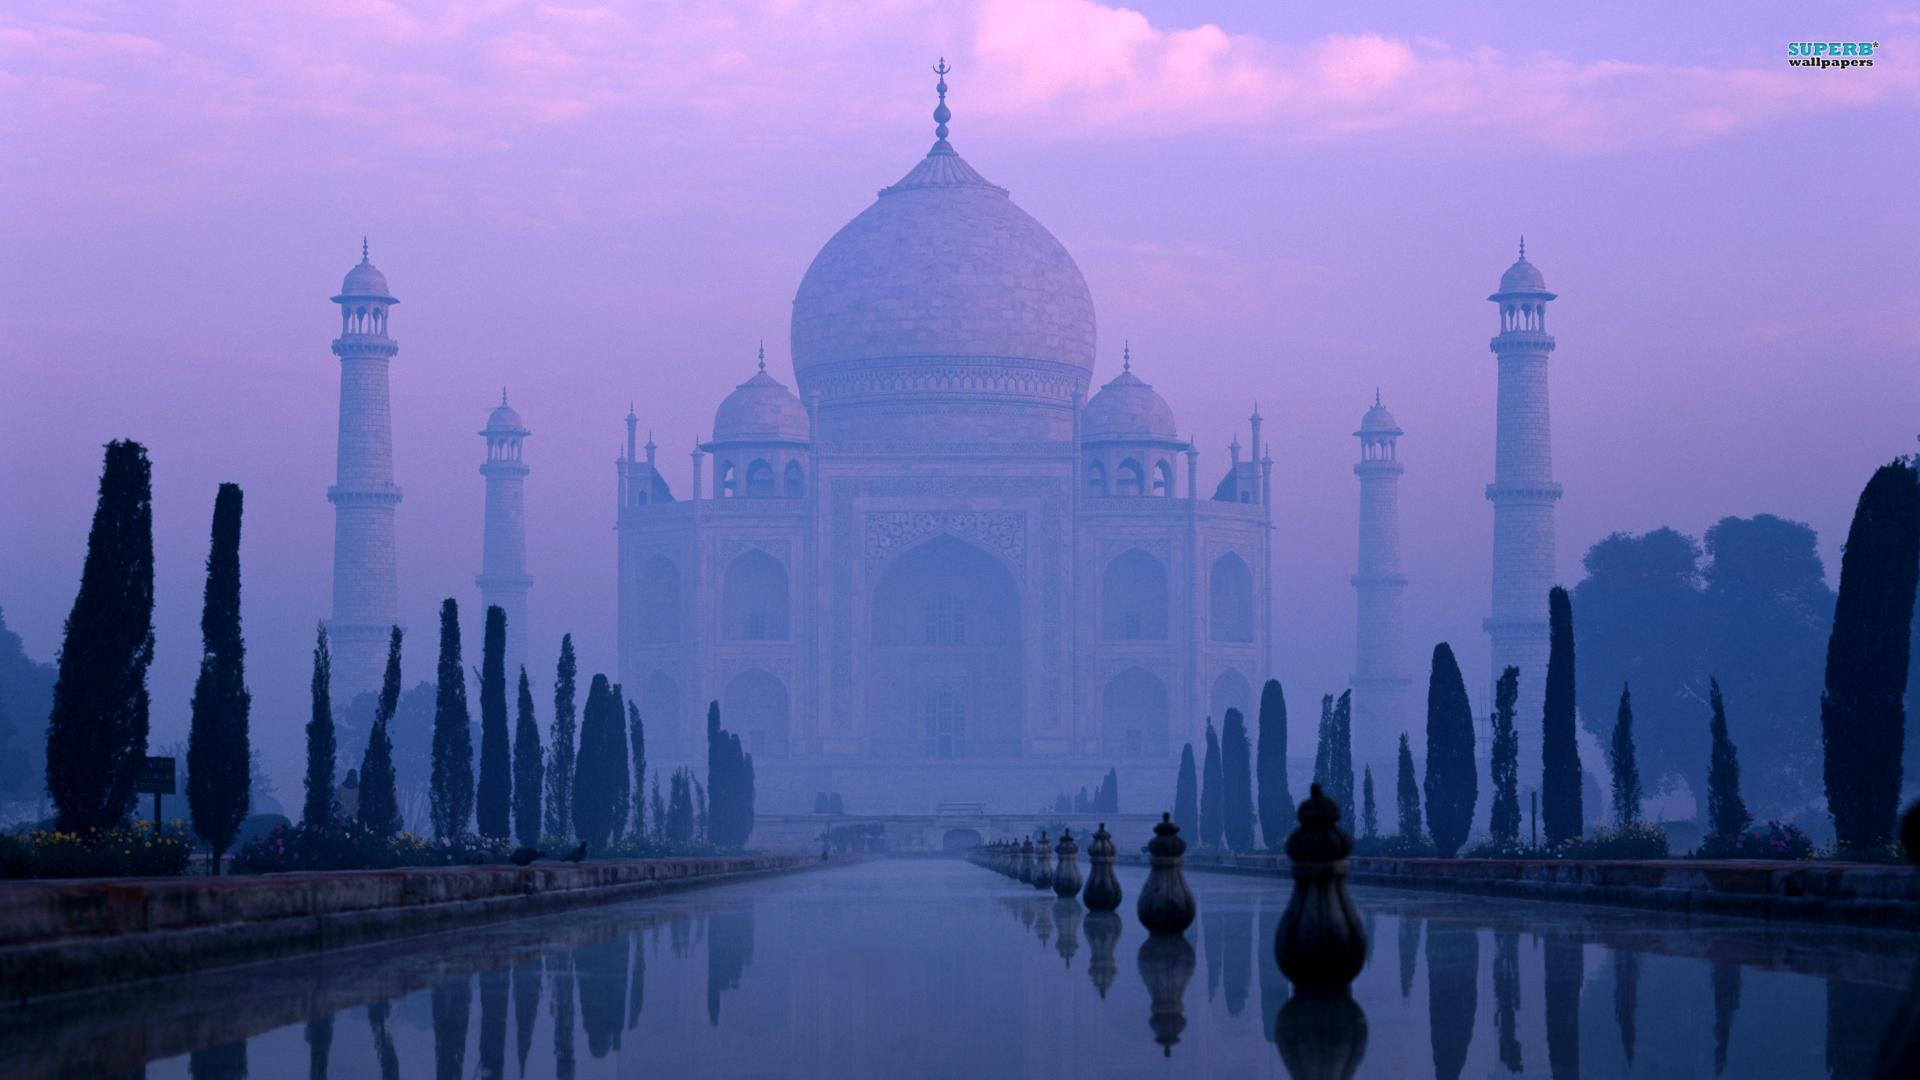 Taj Mahal Wallpapers HD Pictures One HD Wallpaper 1920x1080